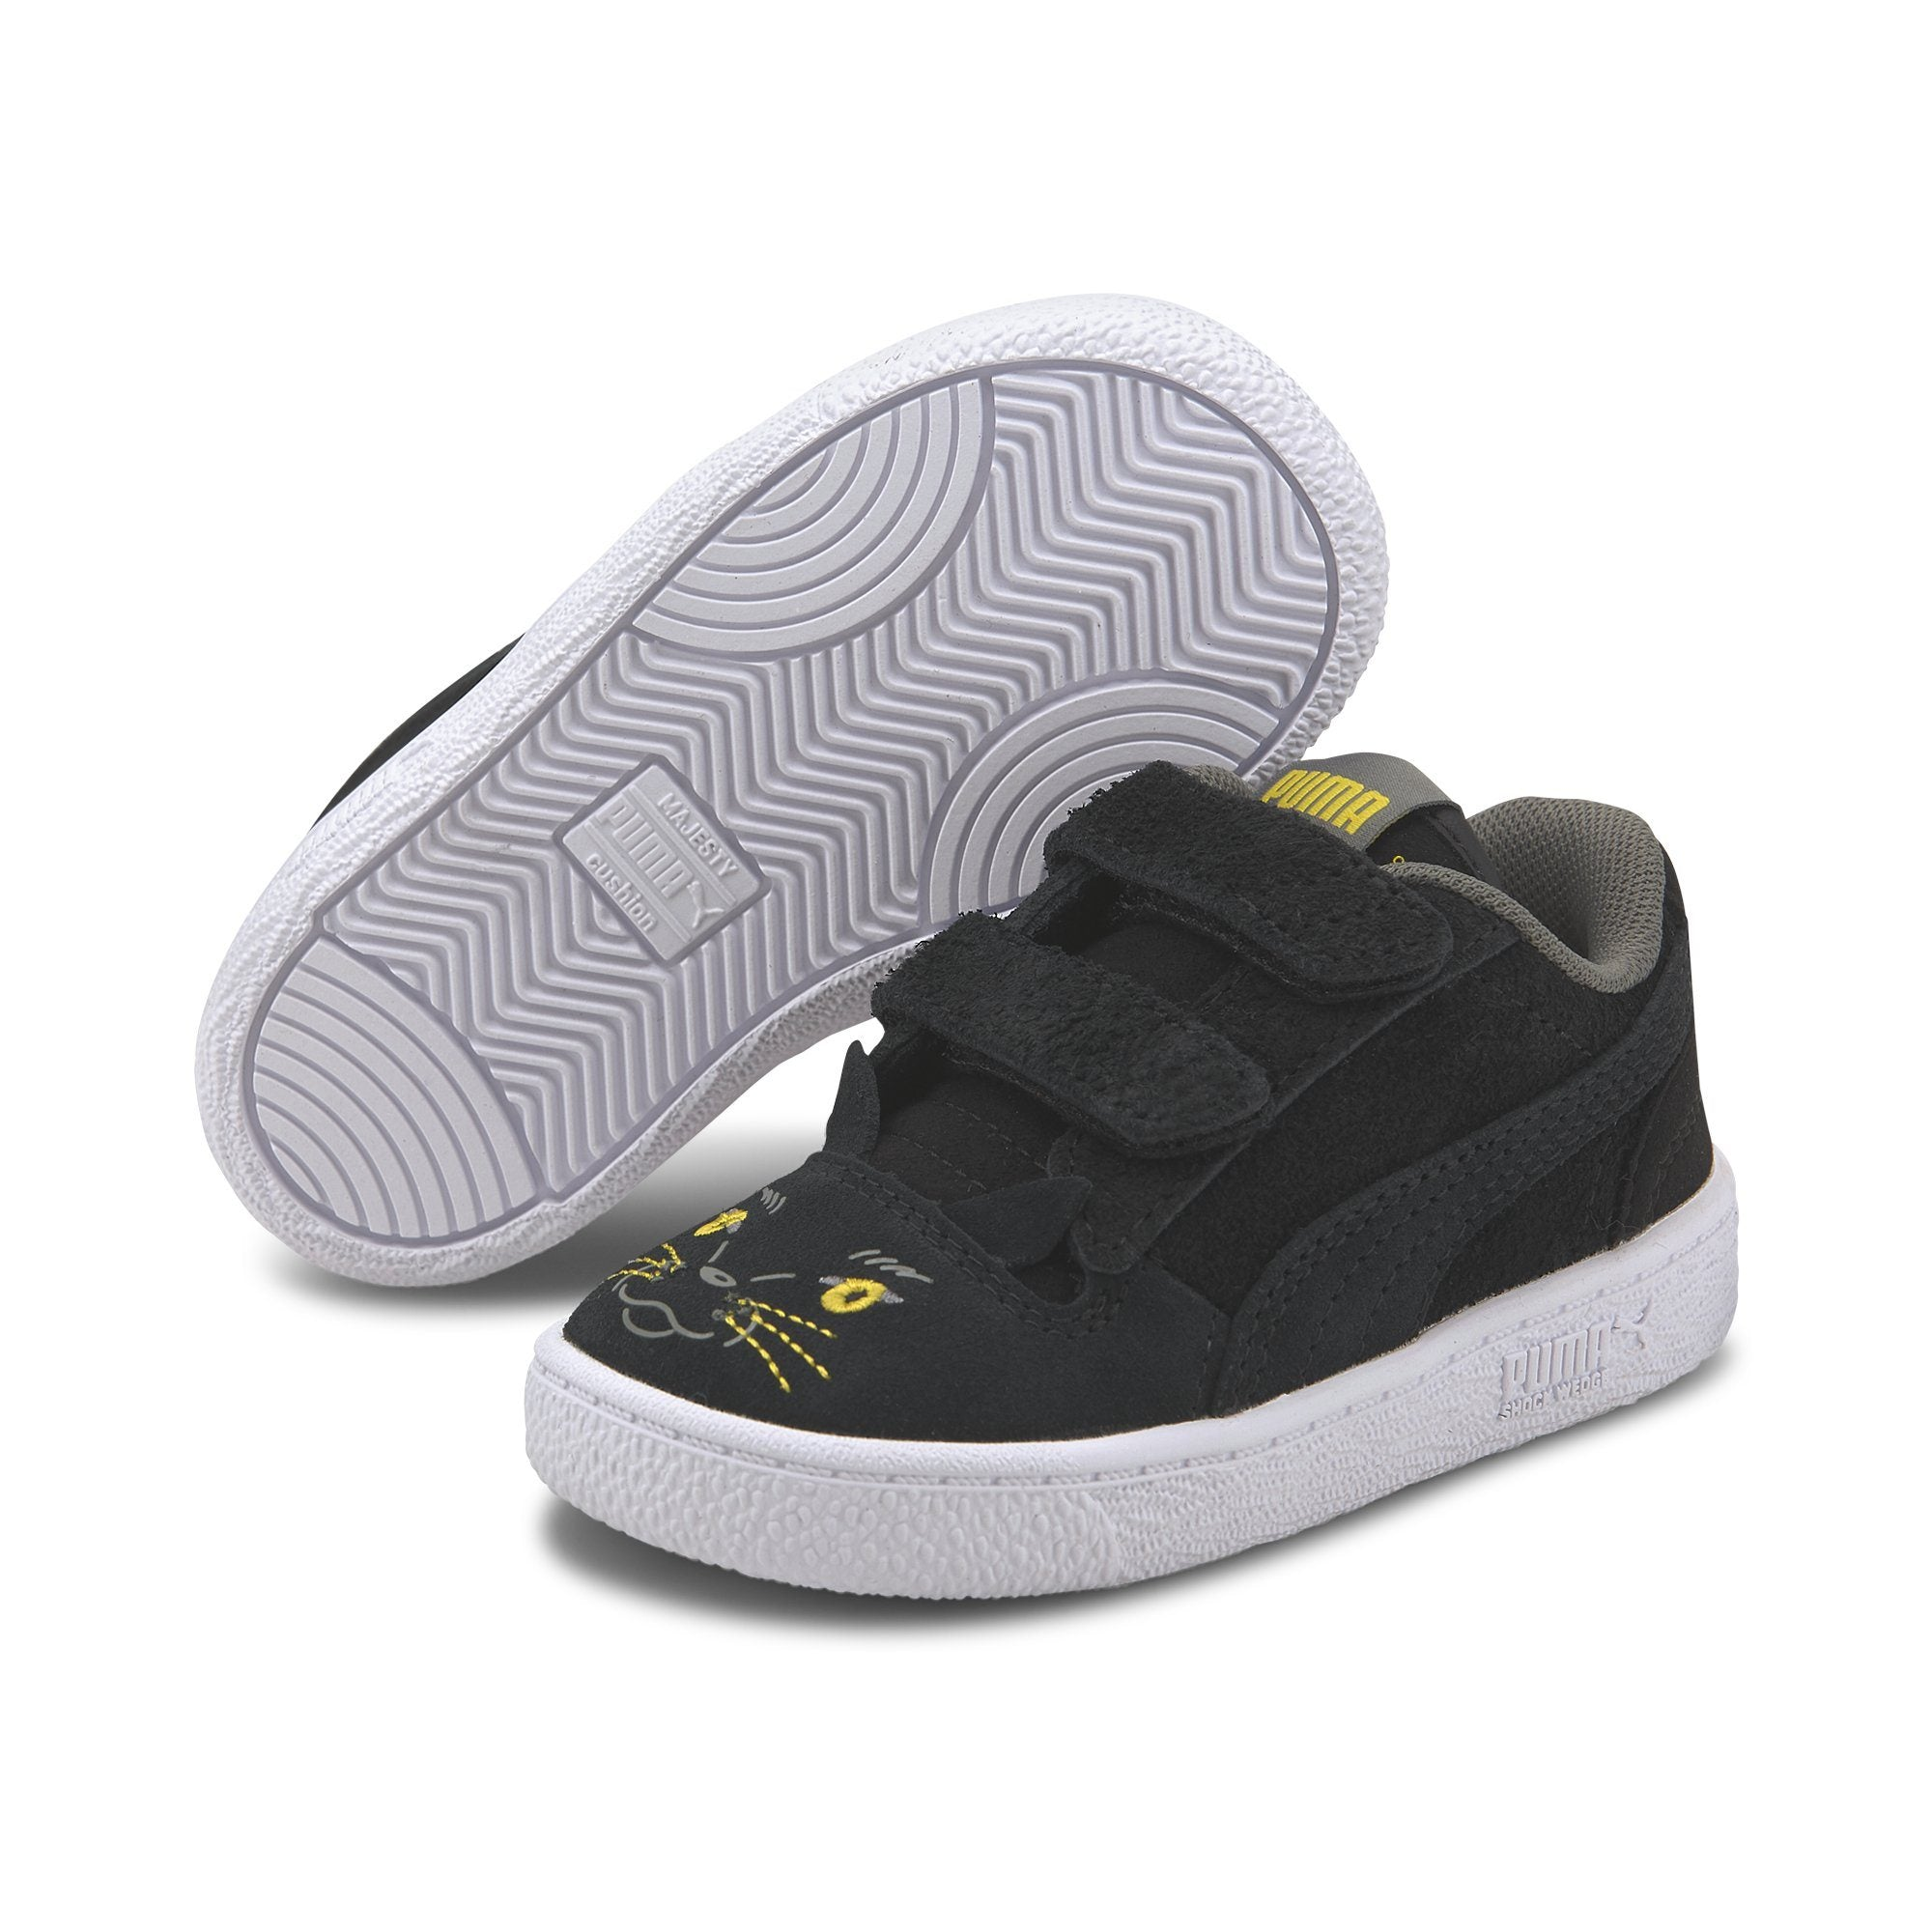 Puma Ralph Sampson Animals Velcro Inf - Puma Black-Super Lemon SP-Footwear-Kids Puma